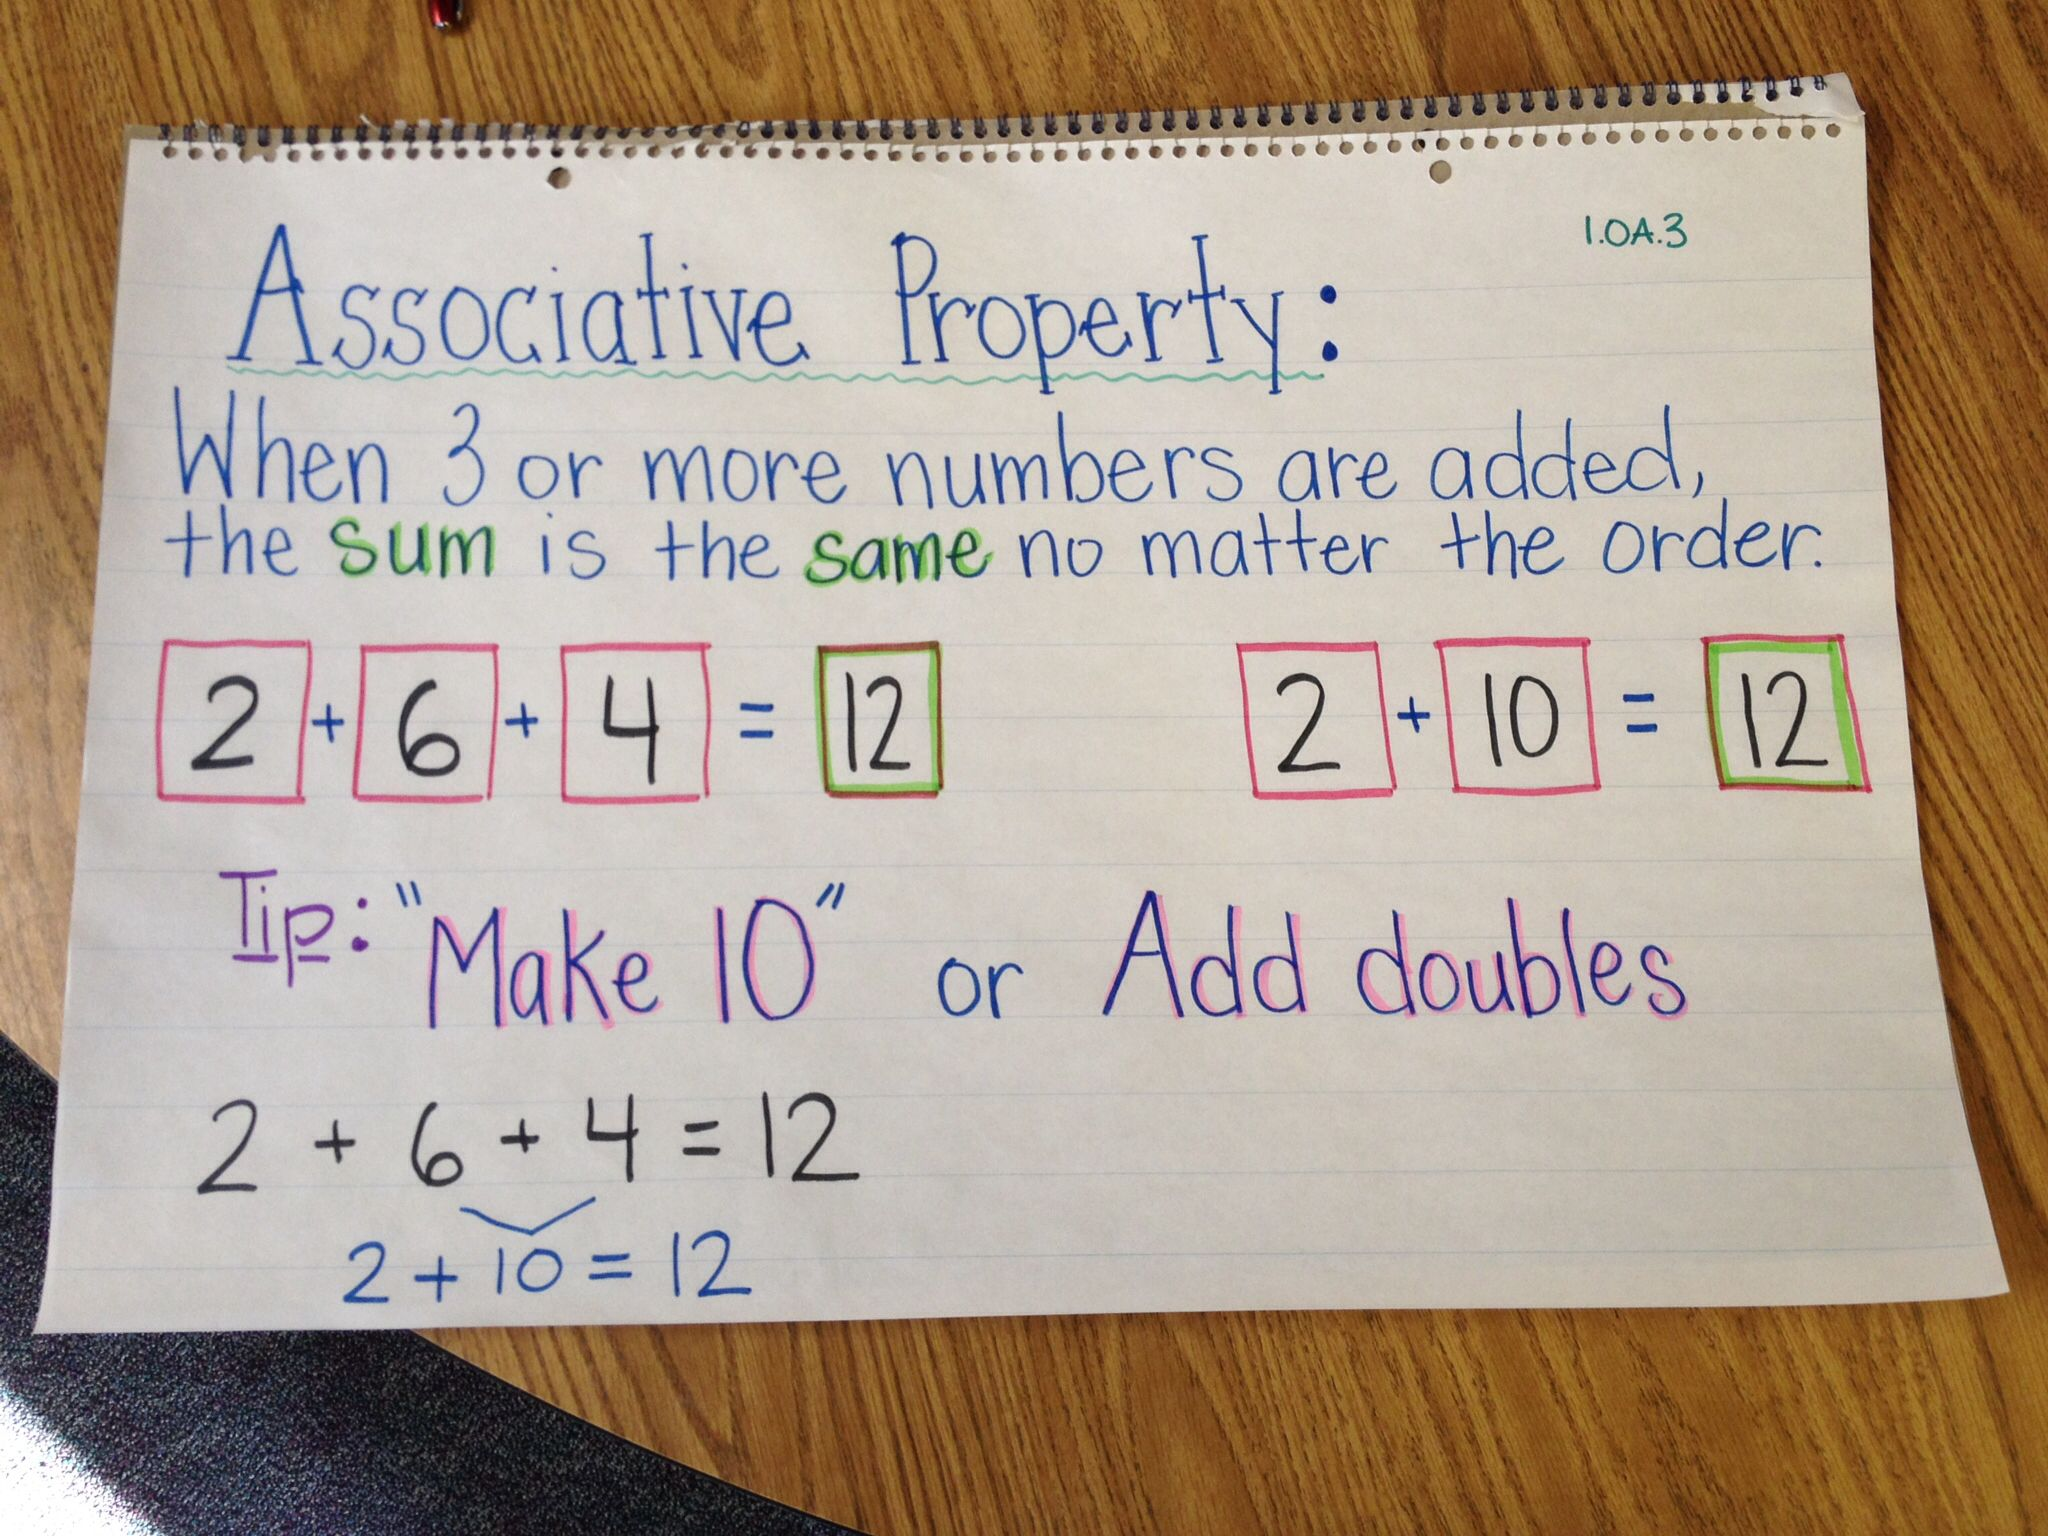 Associative Property Of Addition Anchor Chart Miriam